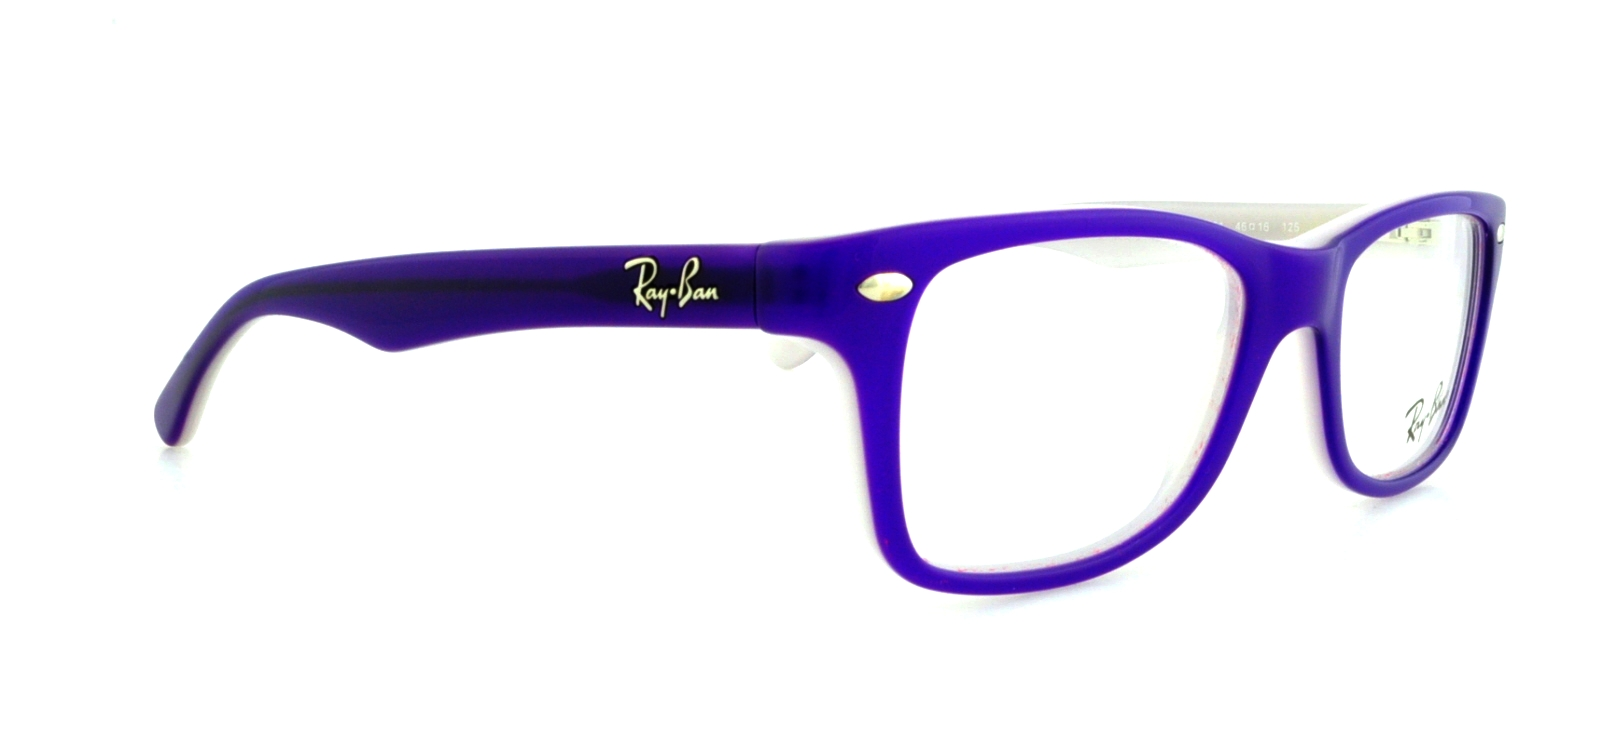 6fc52f33dff81 Ray Ban Junior Eyeglasses Ry1531 « One More Soul